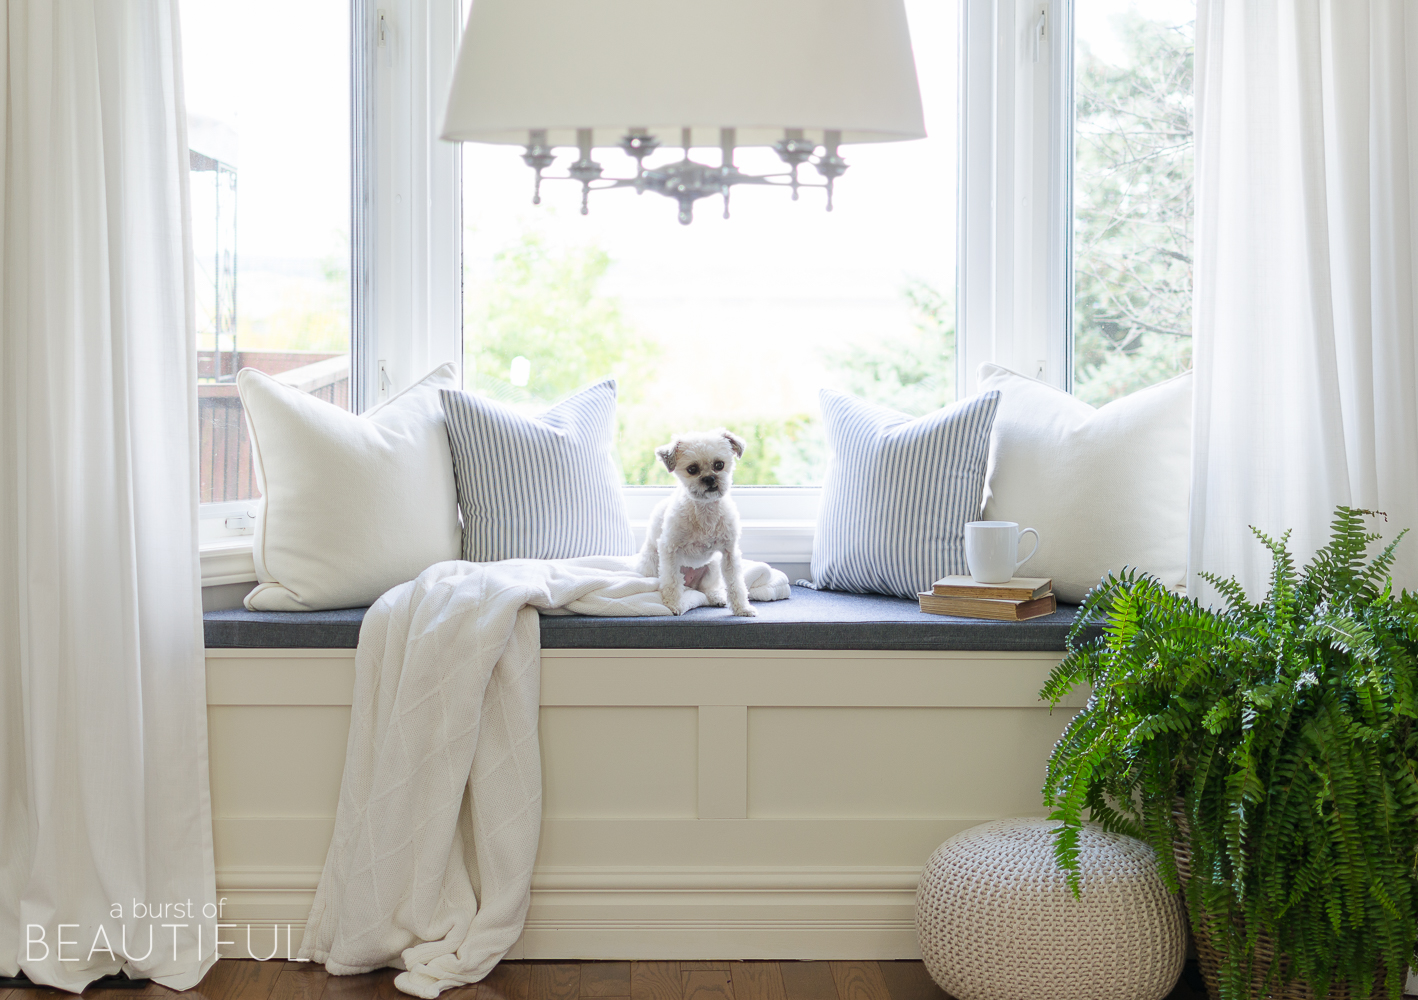 DIY Window Bench with Storage - A Burst of Beautiful